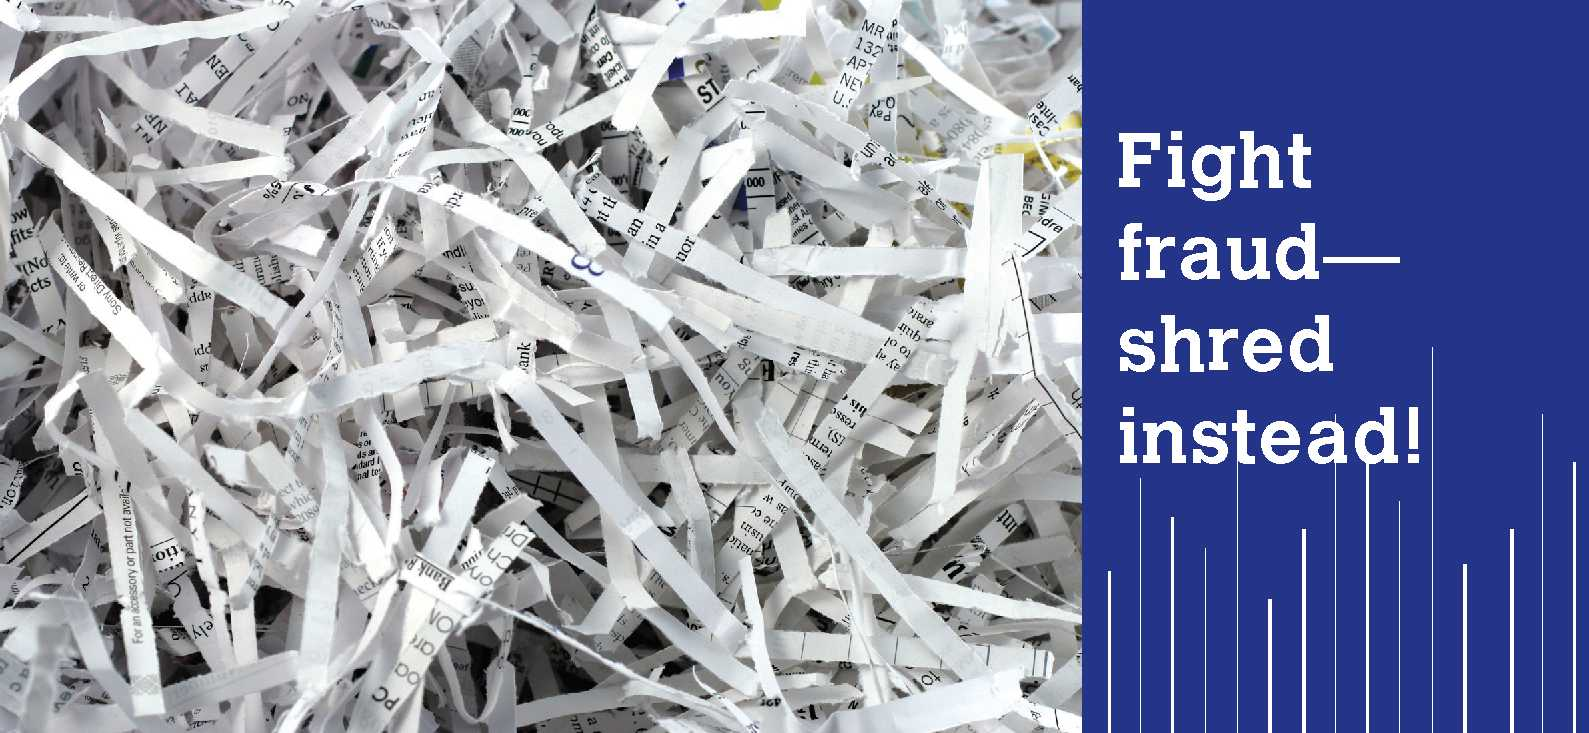 CANCELLED: Shred Personal Documents for Free Oct. 12 in Fargo